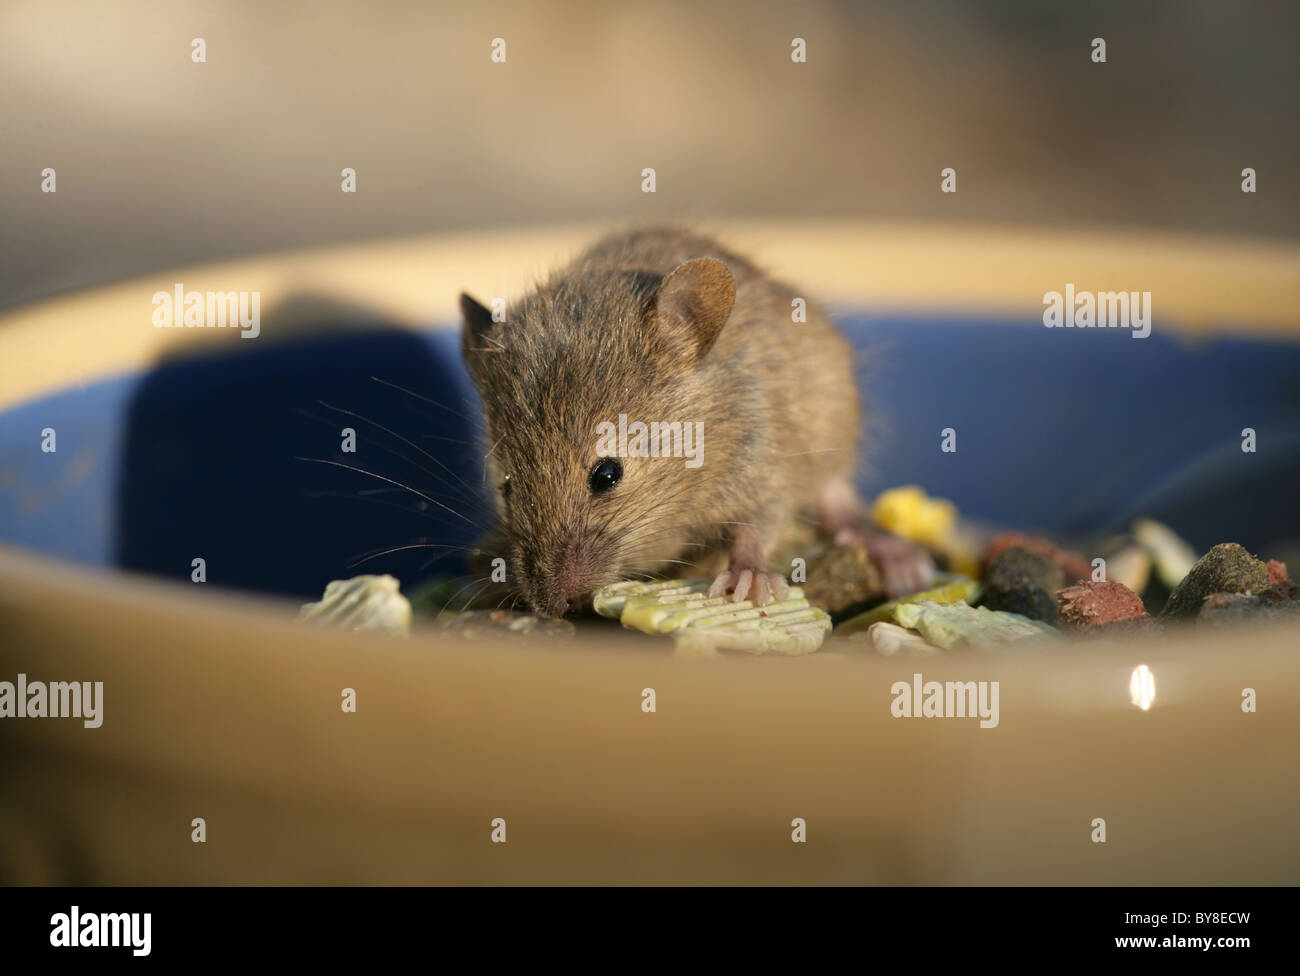 House Mouse Mus musculus Single adult eating pet rabbit food UK - Stock Image